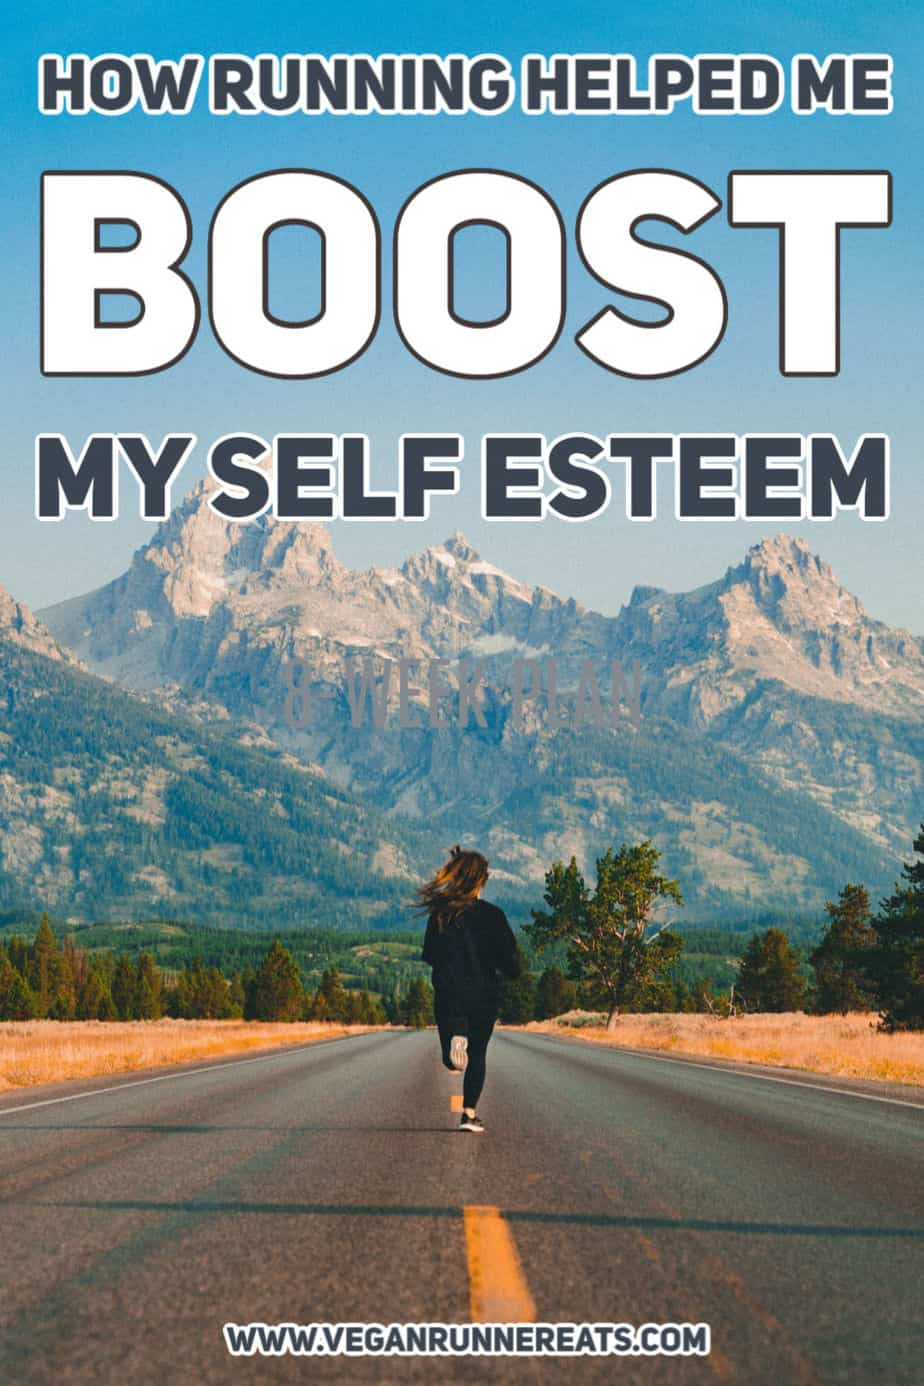 How running helped me boost my self esteem and overcome challenges.